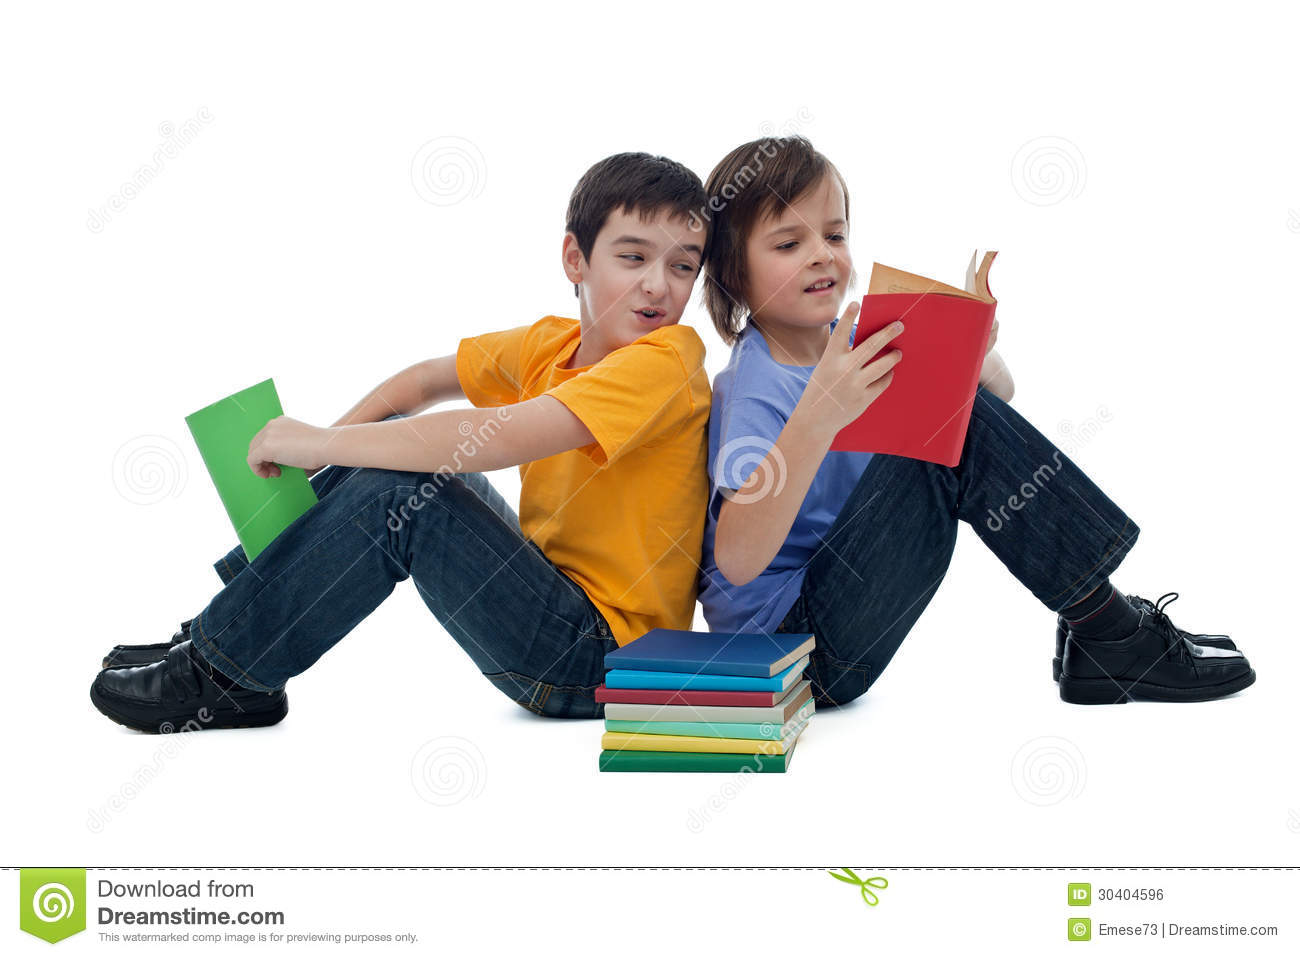 Two Boys Reading Books Royalty Free Stock Image   Image  30404596